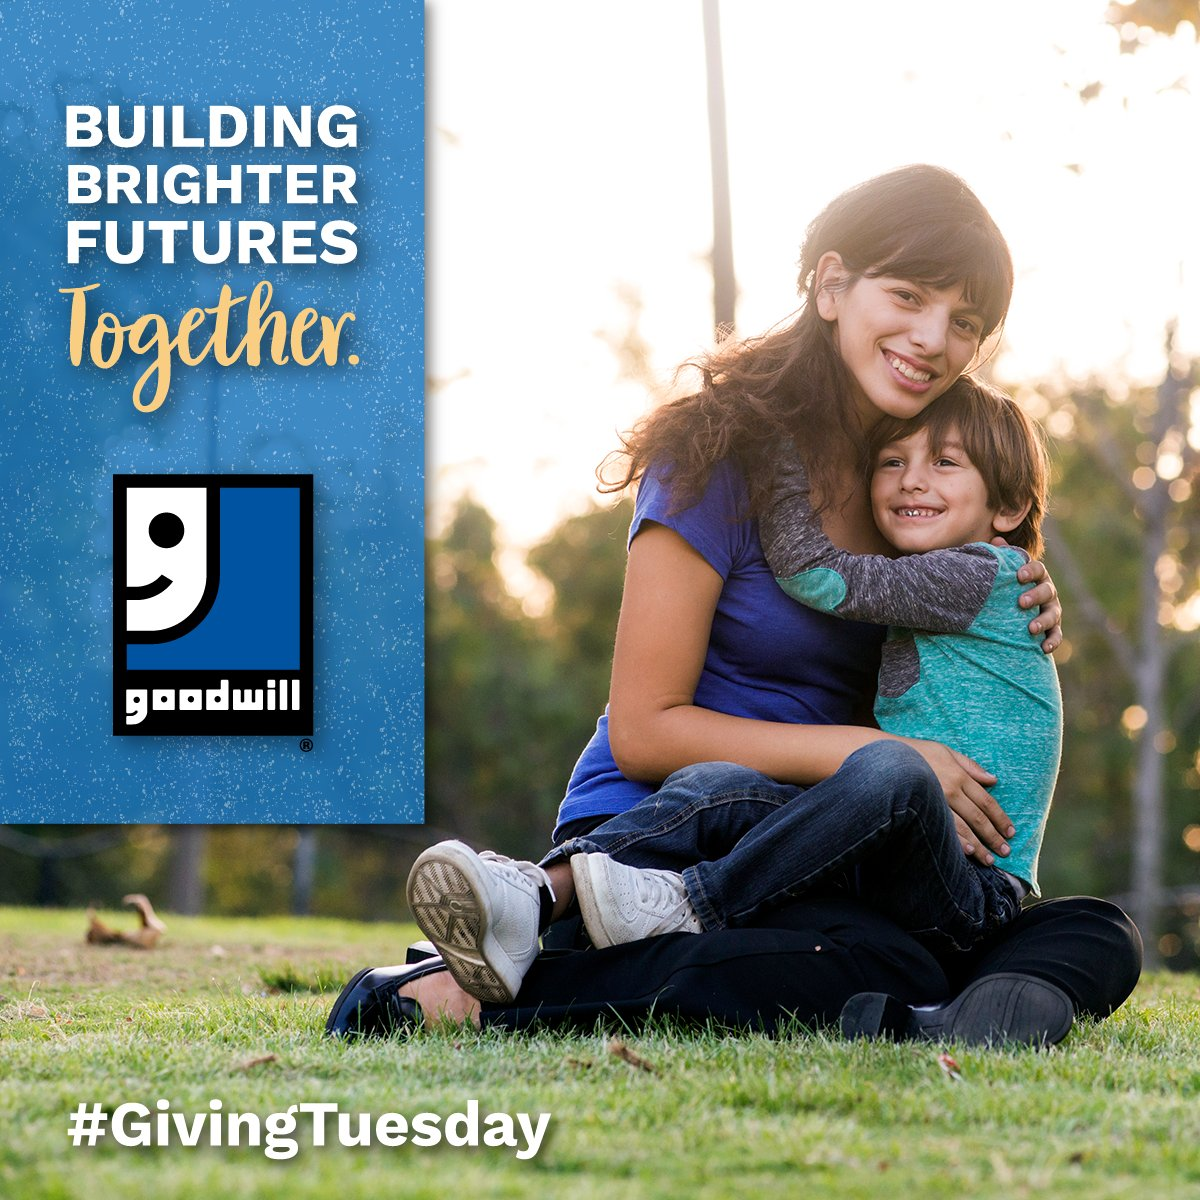 Just one more day until #GivingTuesday! Last year, because of supporters like you, we helped more than 5,500 people with job training, educational opportunities and career pathway services. Give Today.